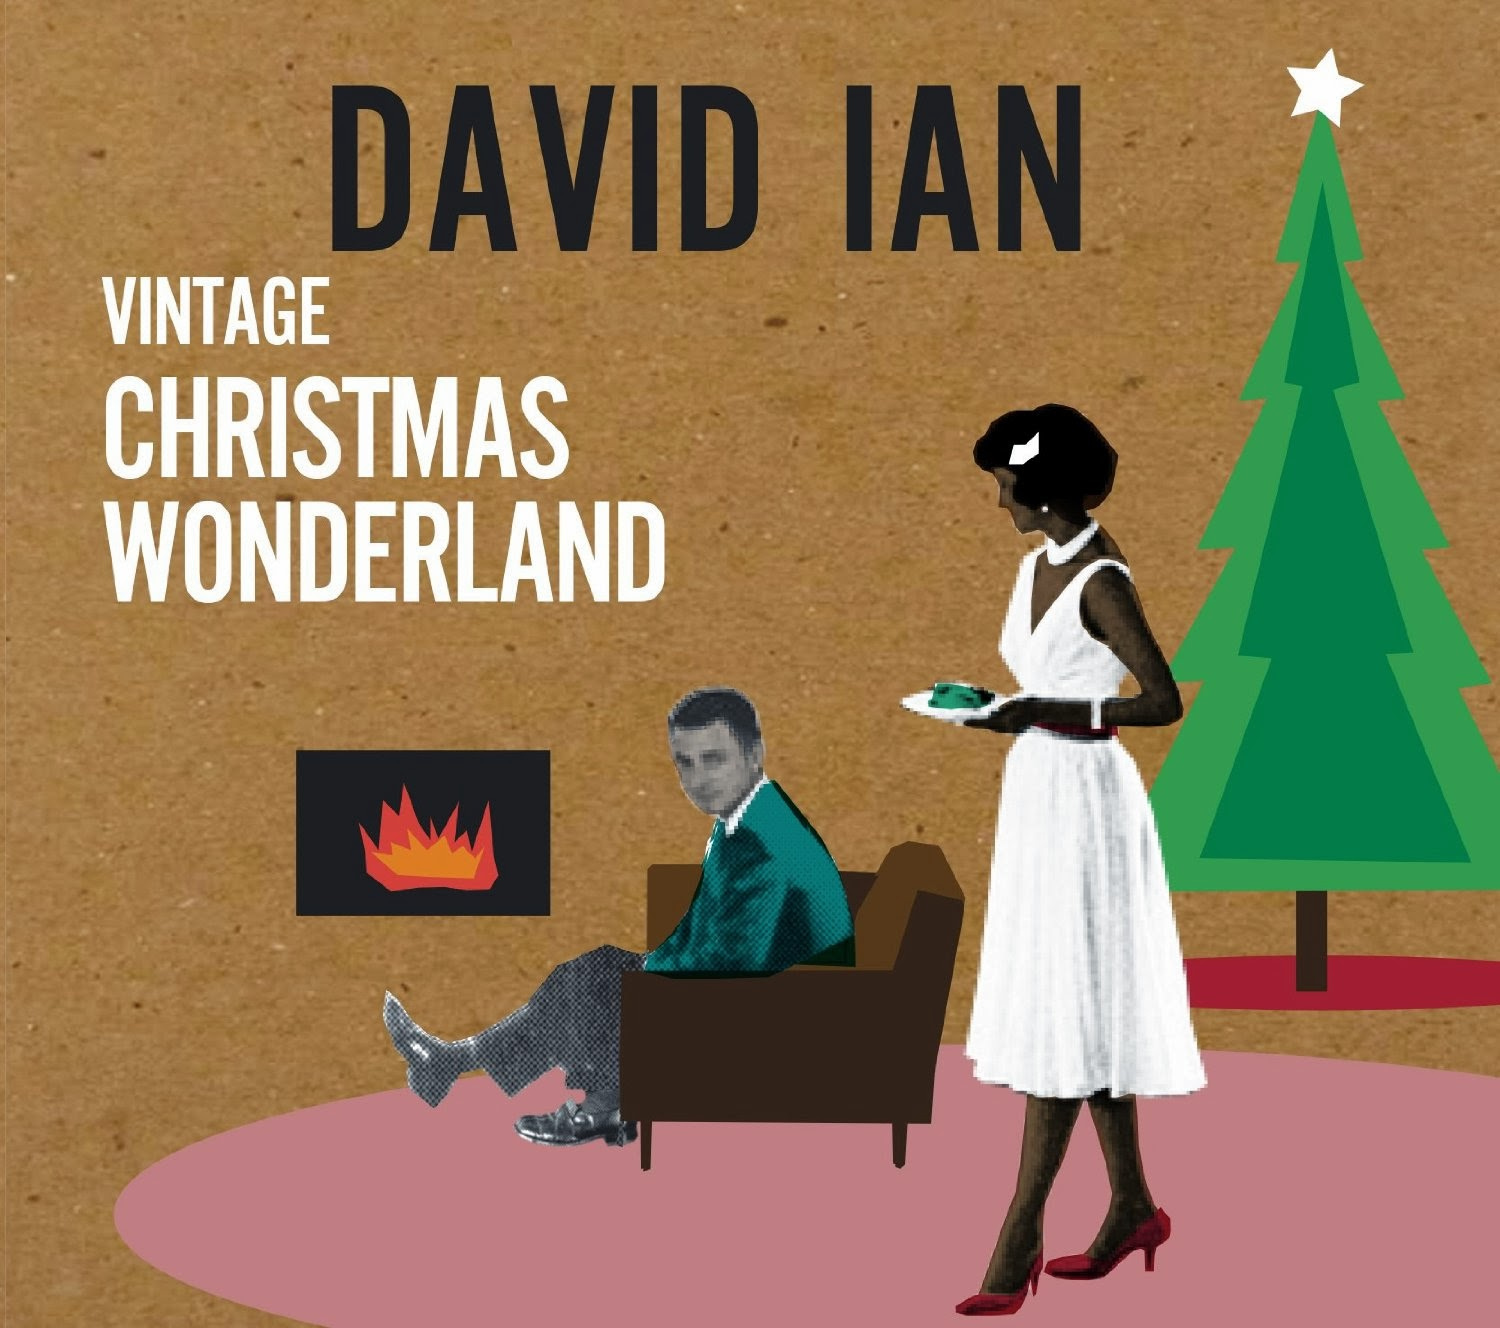 David Ian – Vintage Christmas Wonderland